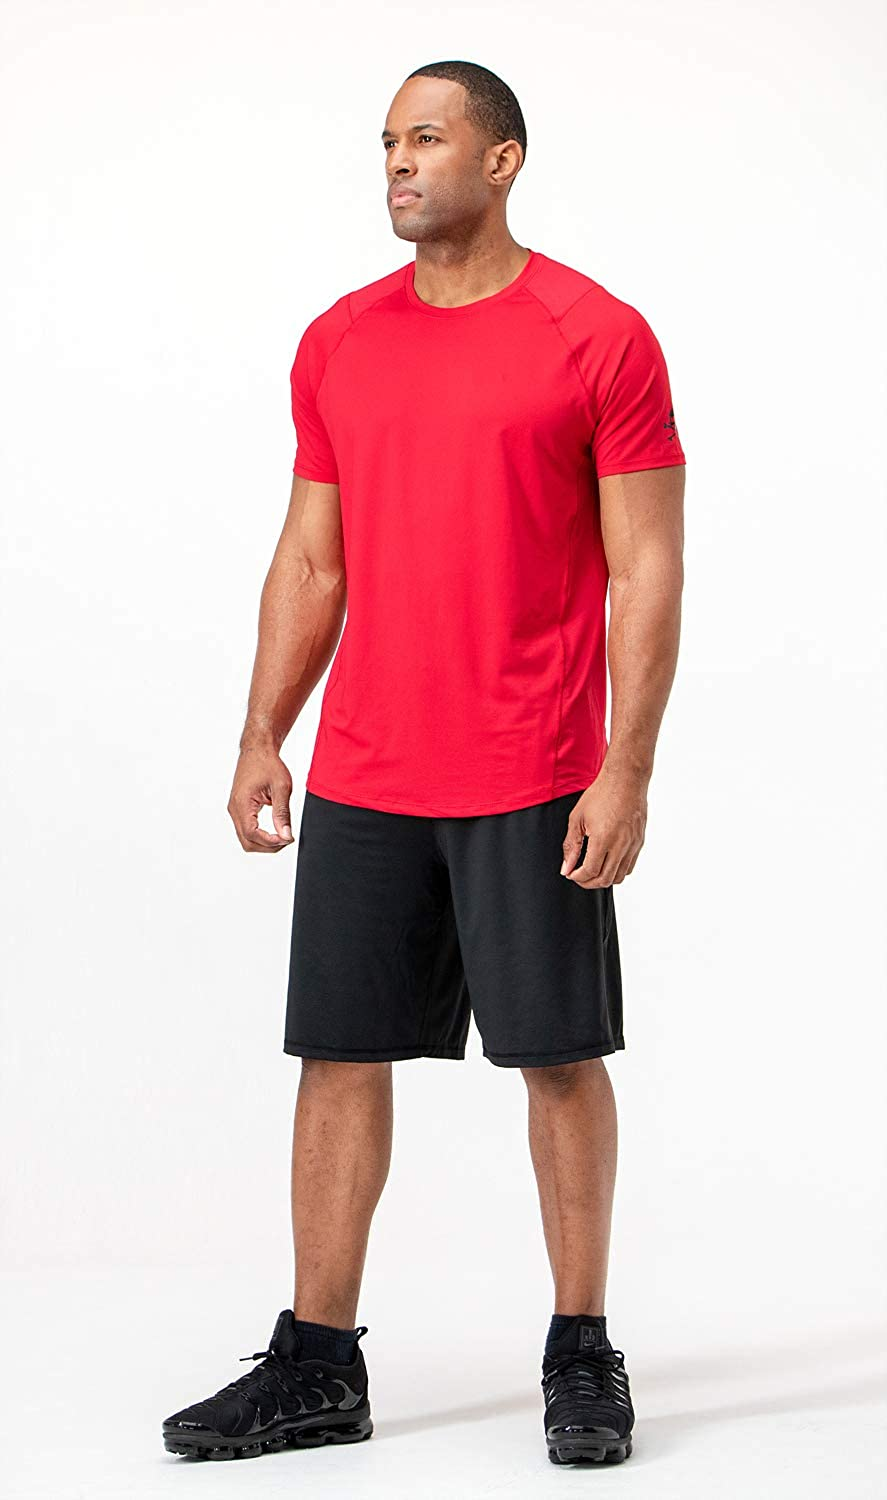 DEVOPS Mens 3 Pack Cool Chain Sports Active Hyper-Dry Workout Short Sleeve T-Shirts